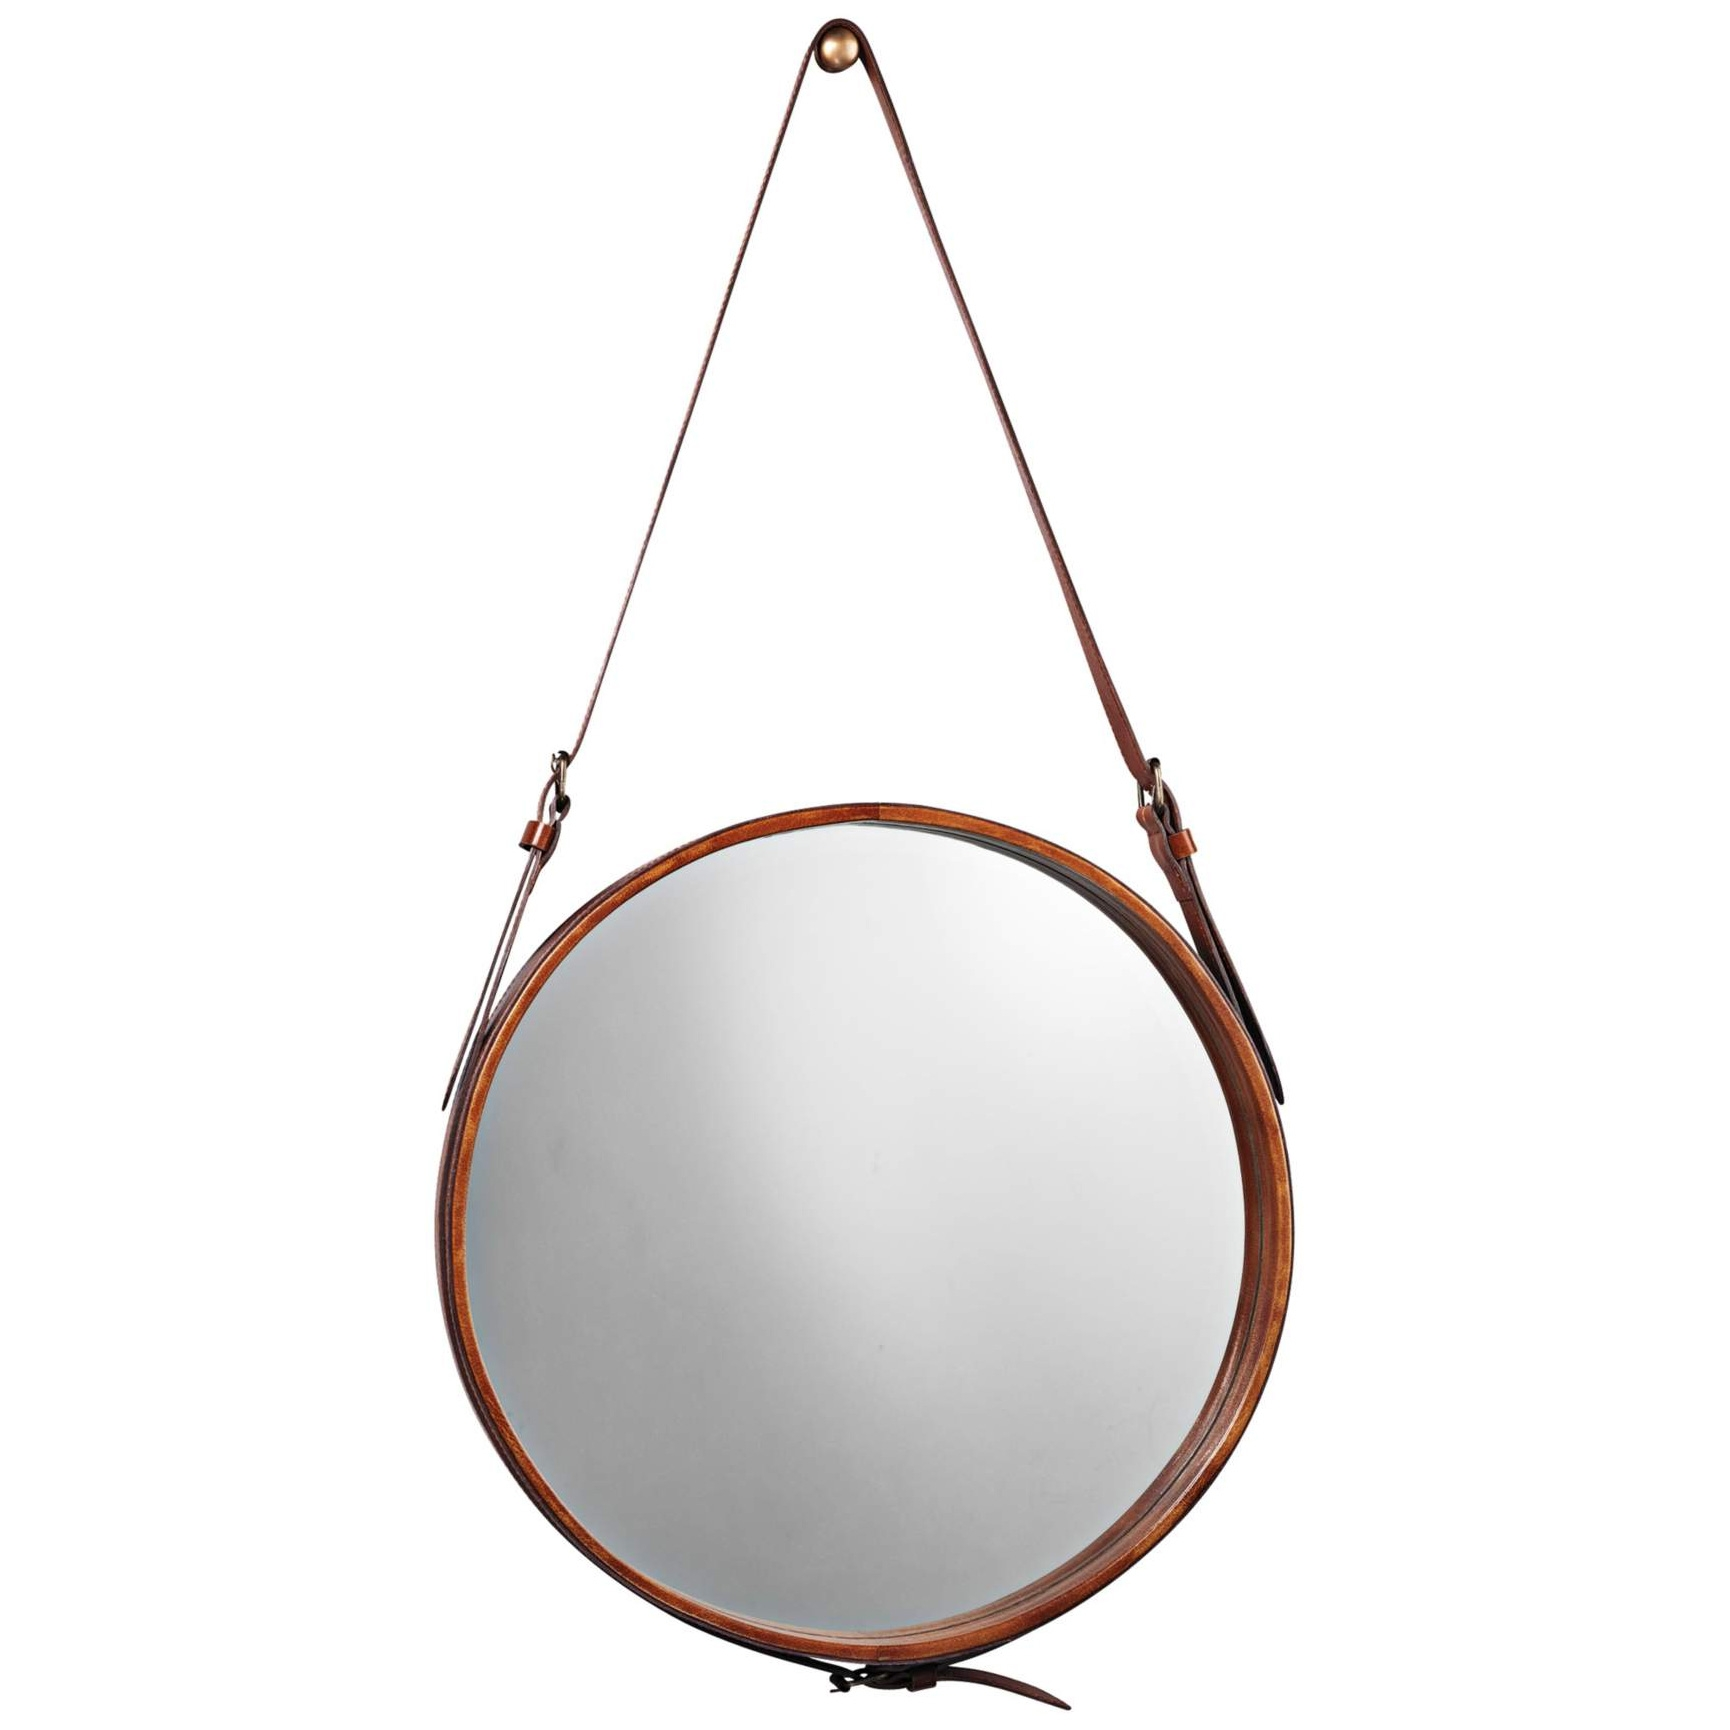 Featured Image of Round Leather Mirror